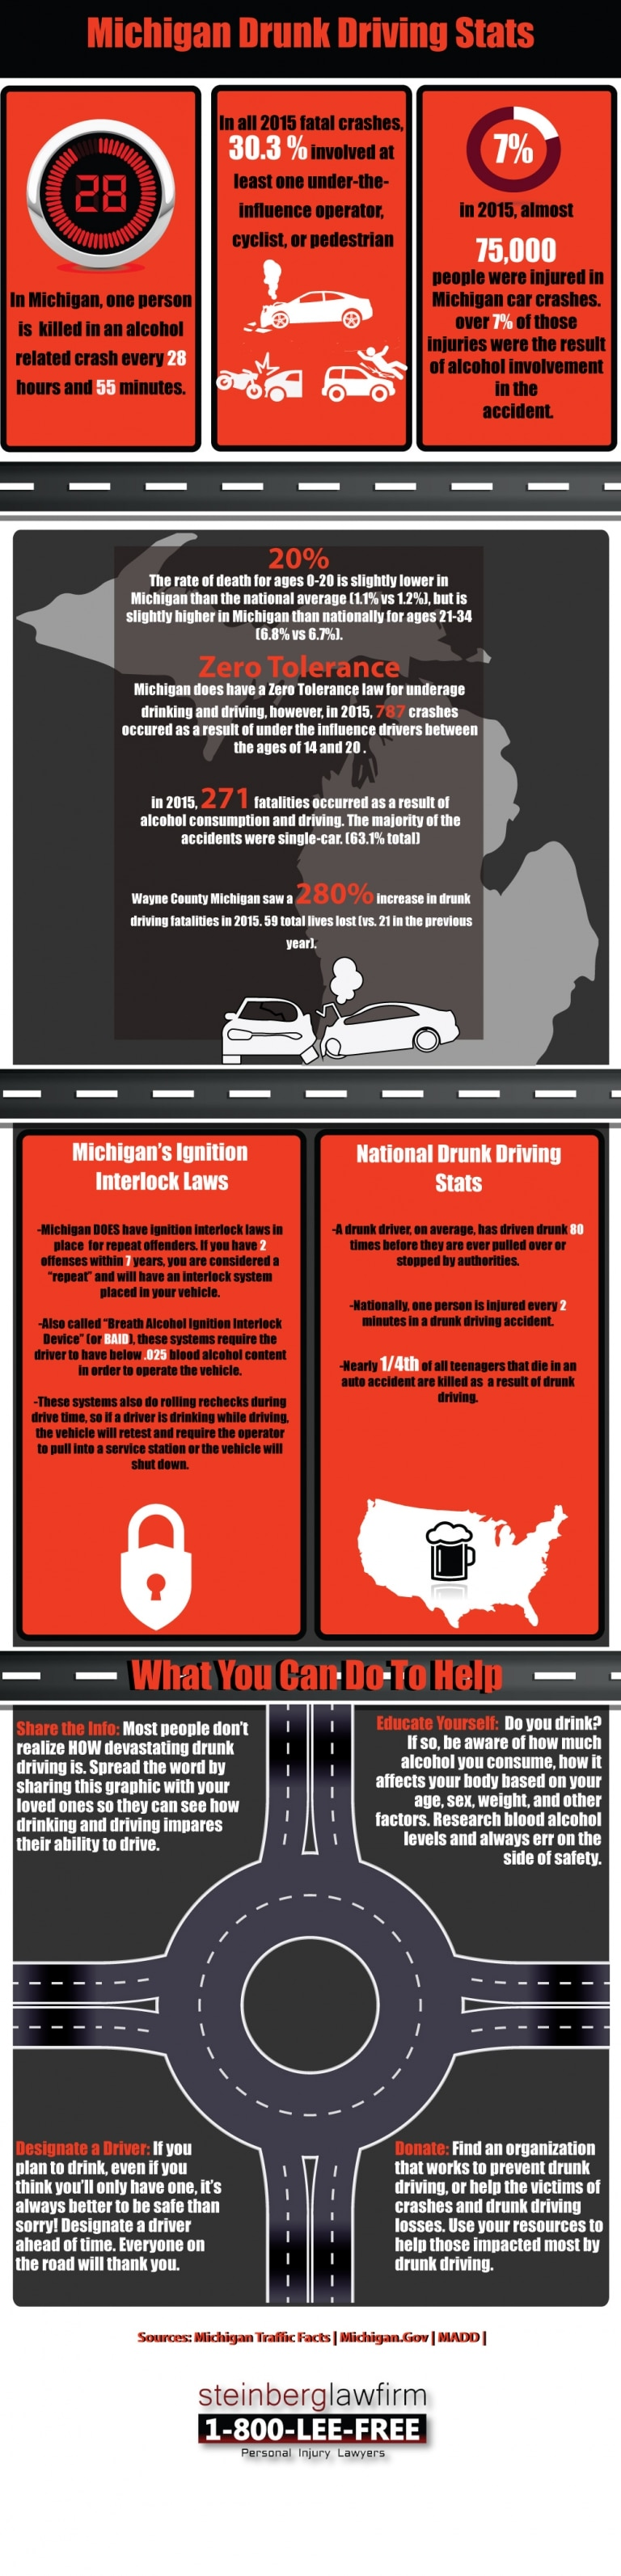 Impaired Driving Law